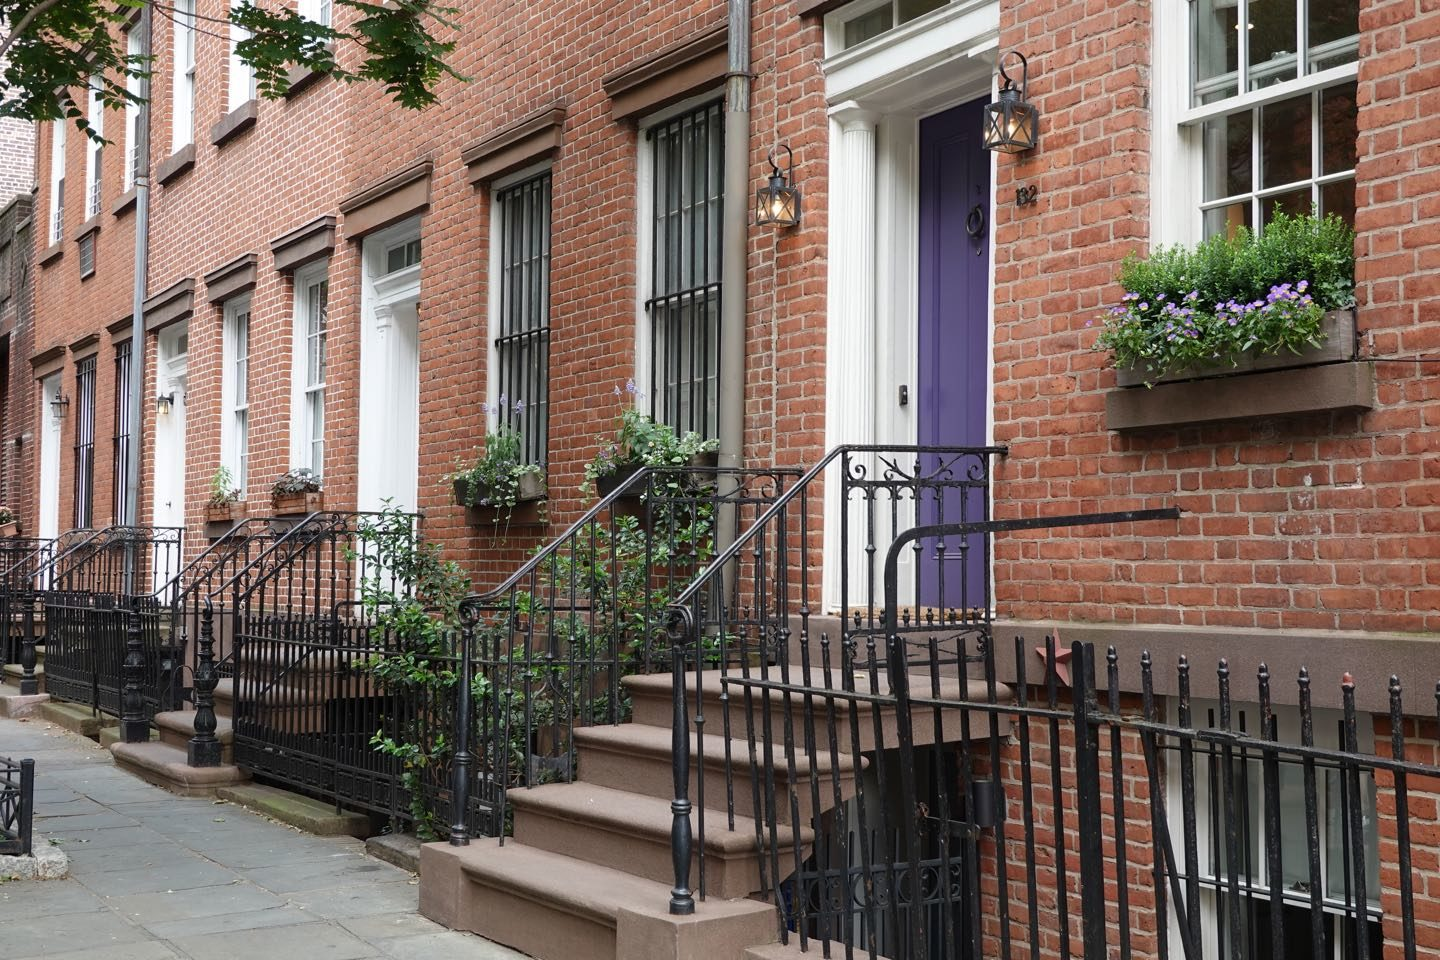 Typical houses in Greenwich Village